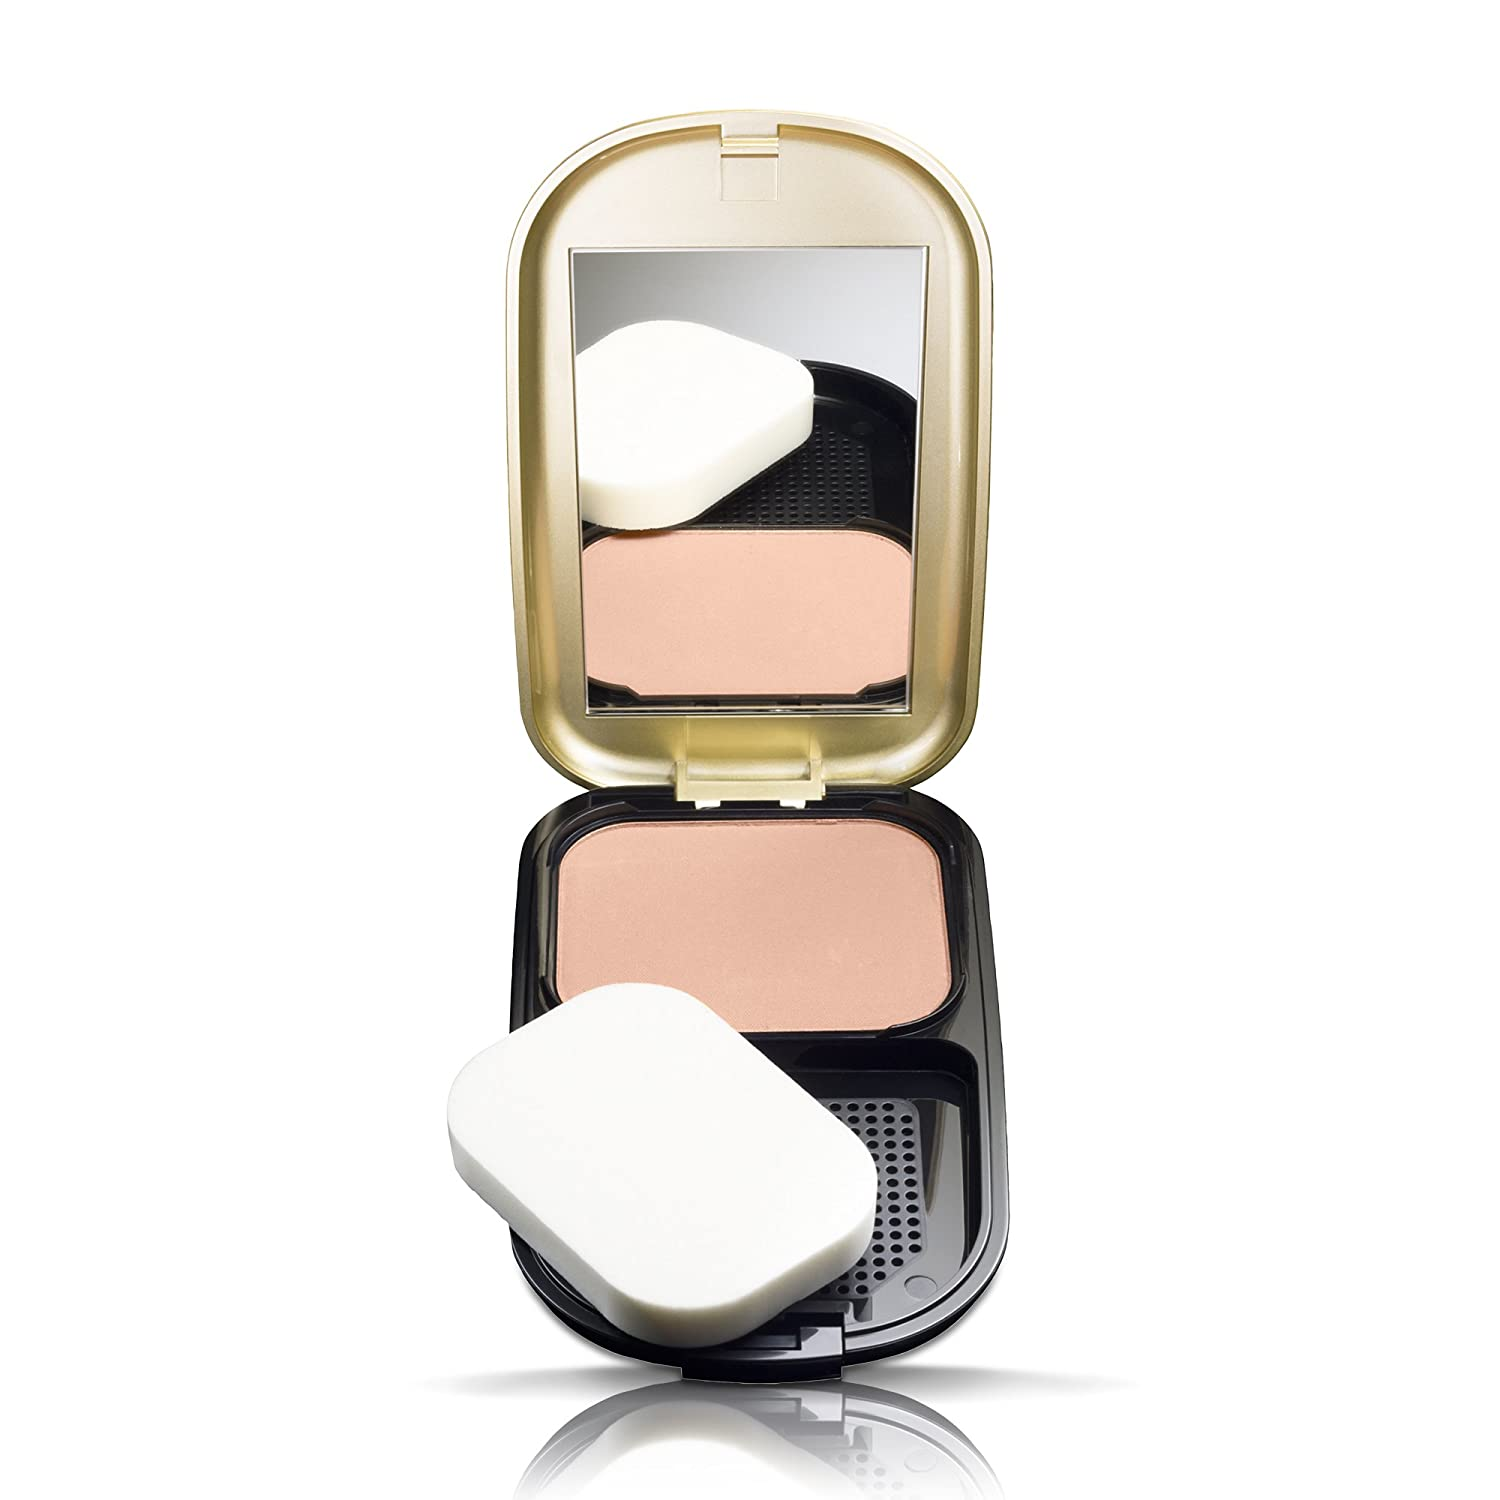 Max Factor Facefinity Compact Foundation, Porcelain, Number 01 81536255